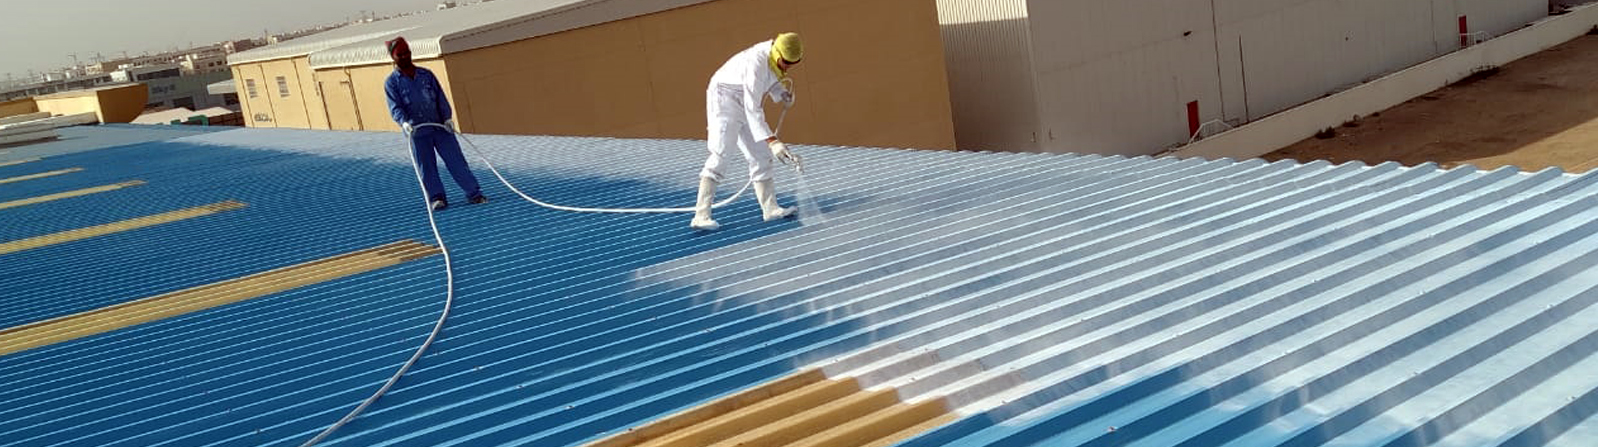 Roof Waterproofing Dubai